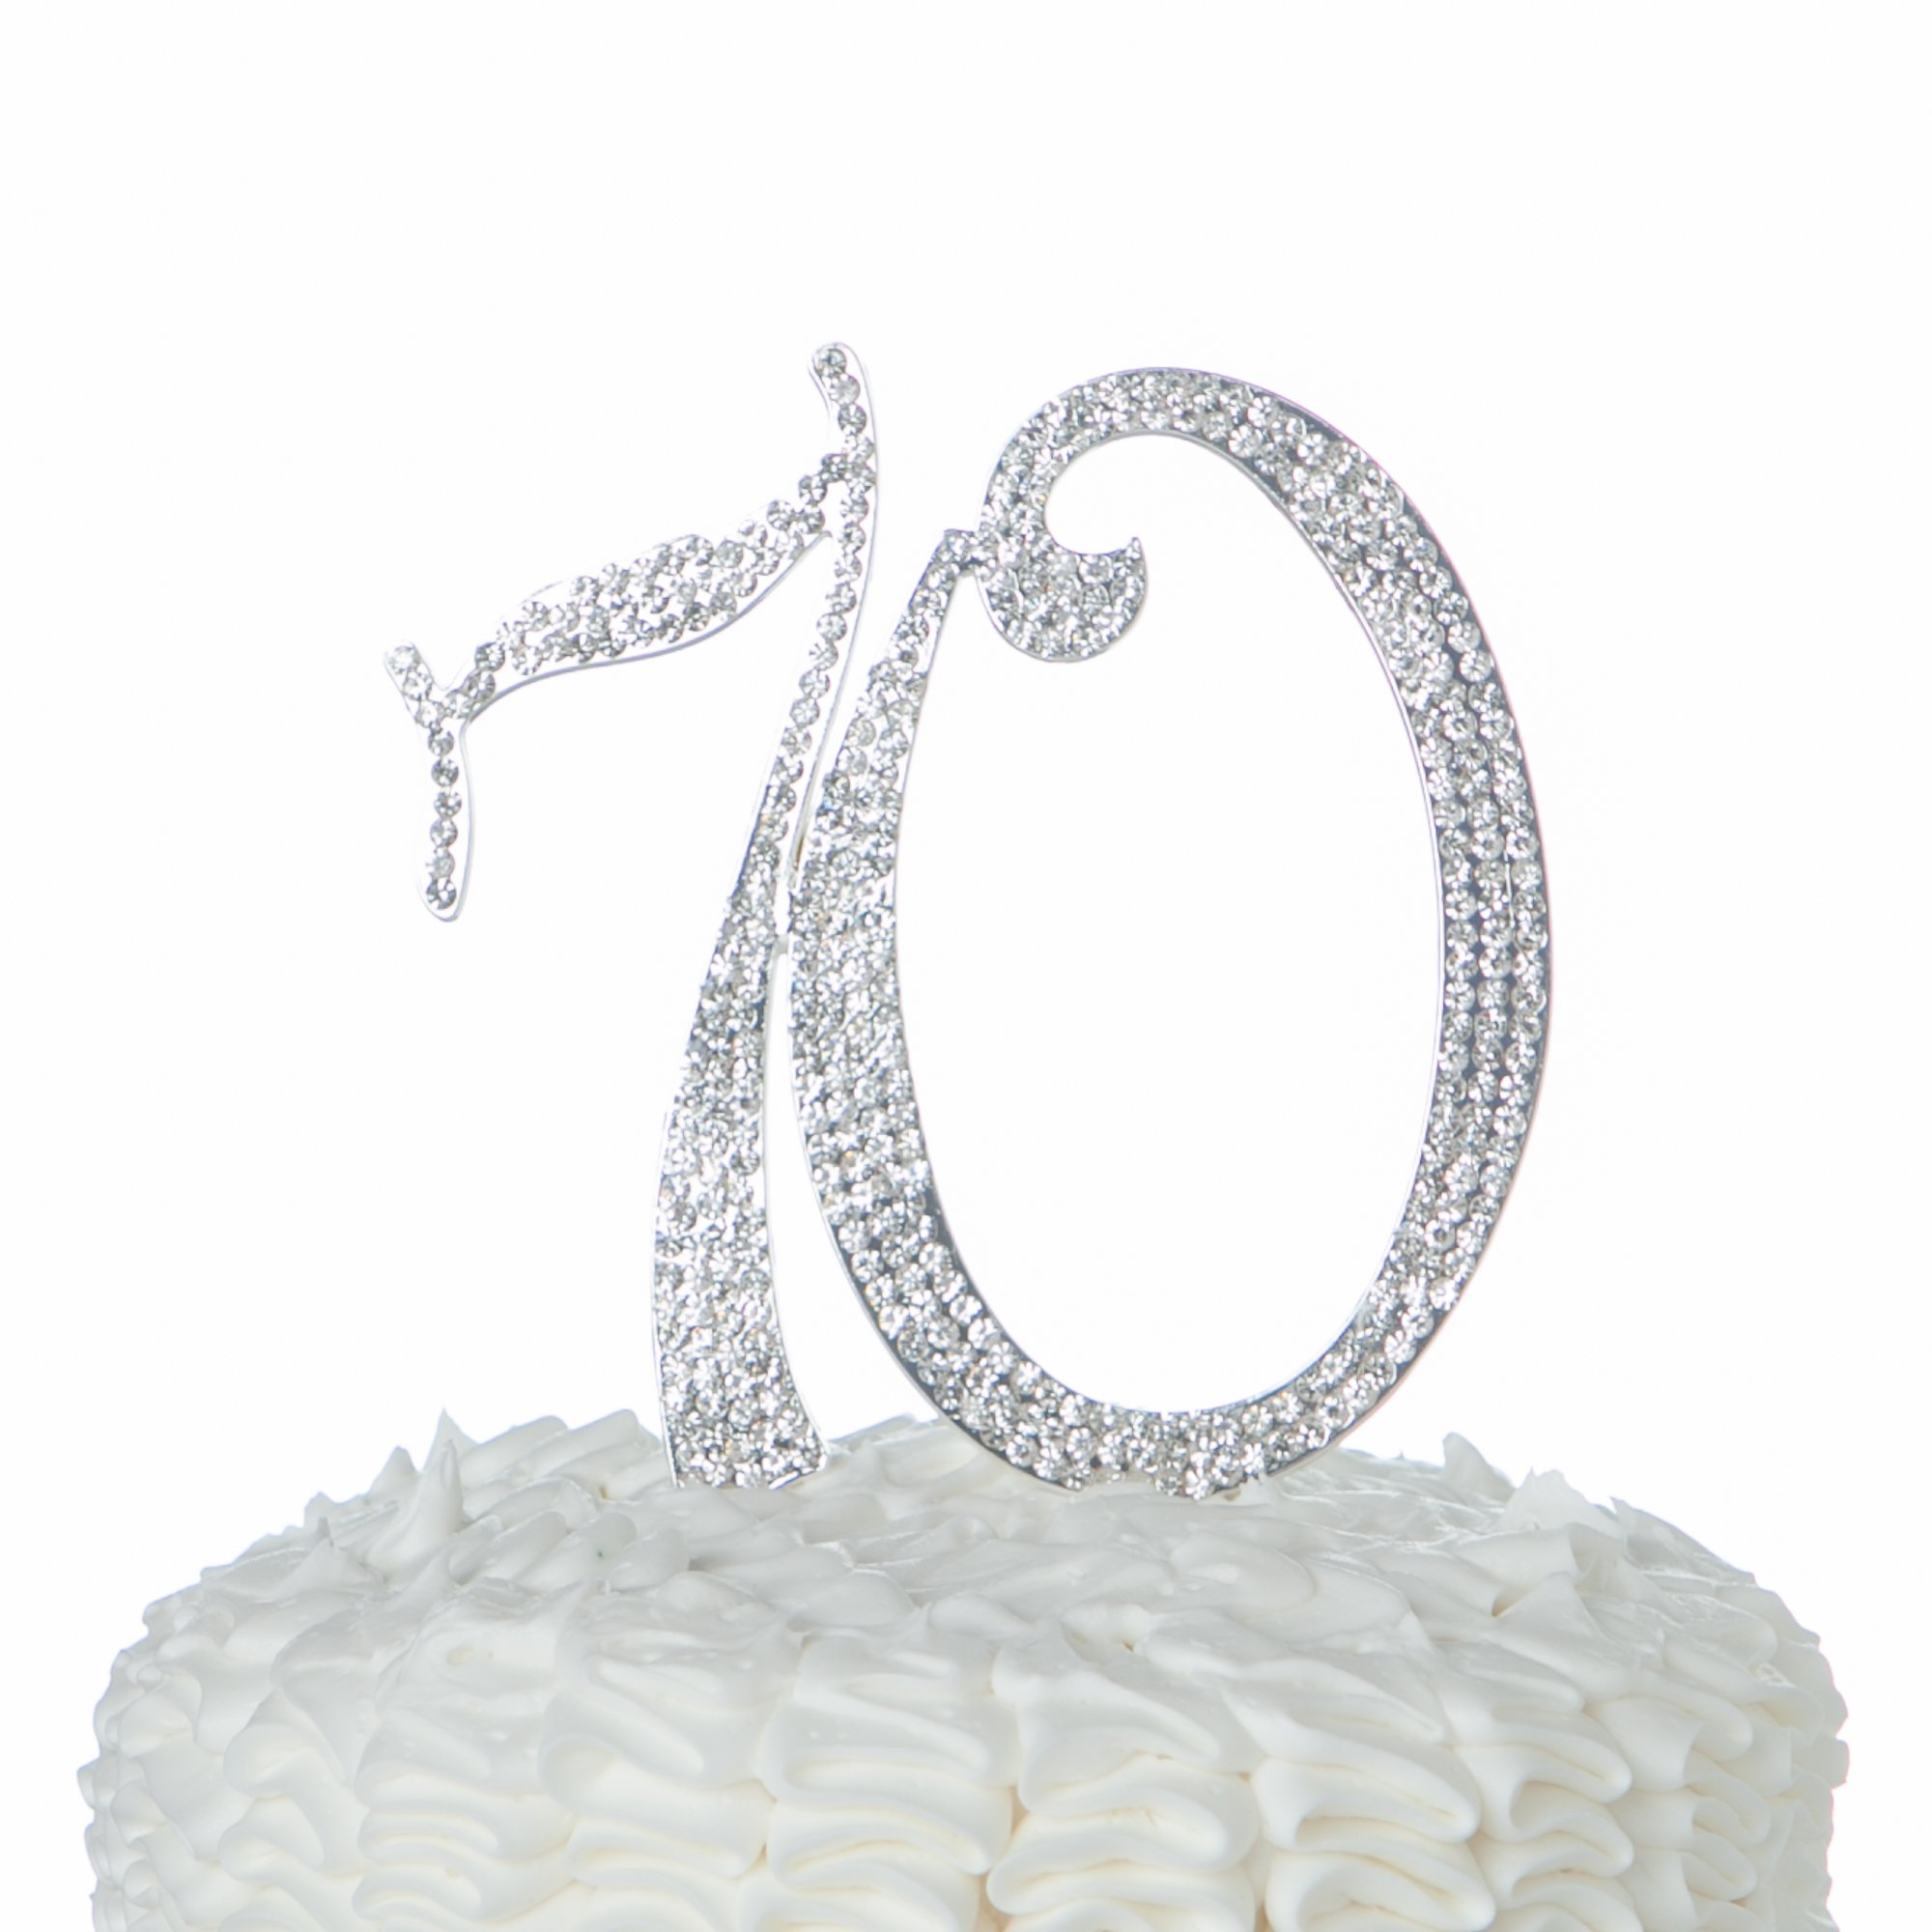 NEW Large Rhinestone NUMBER 70 Cake Topper 70th Birthday Party Anniversary